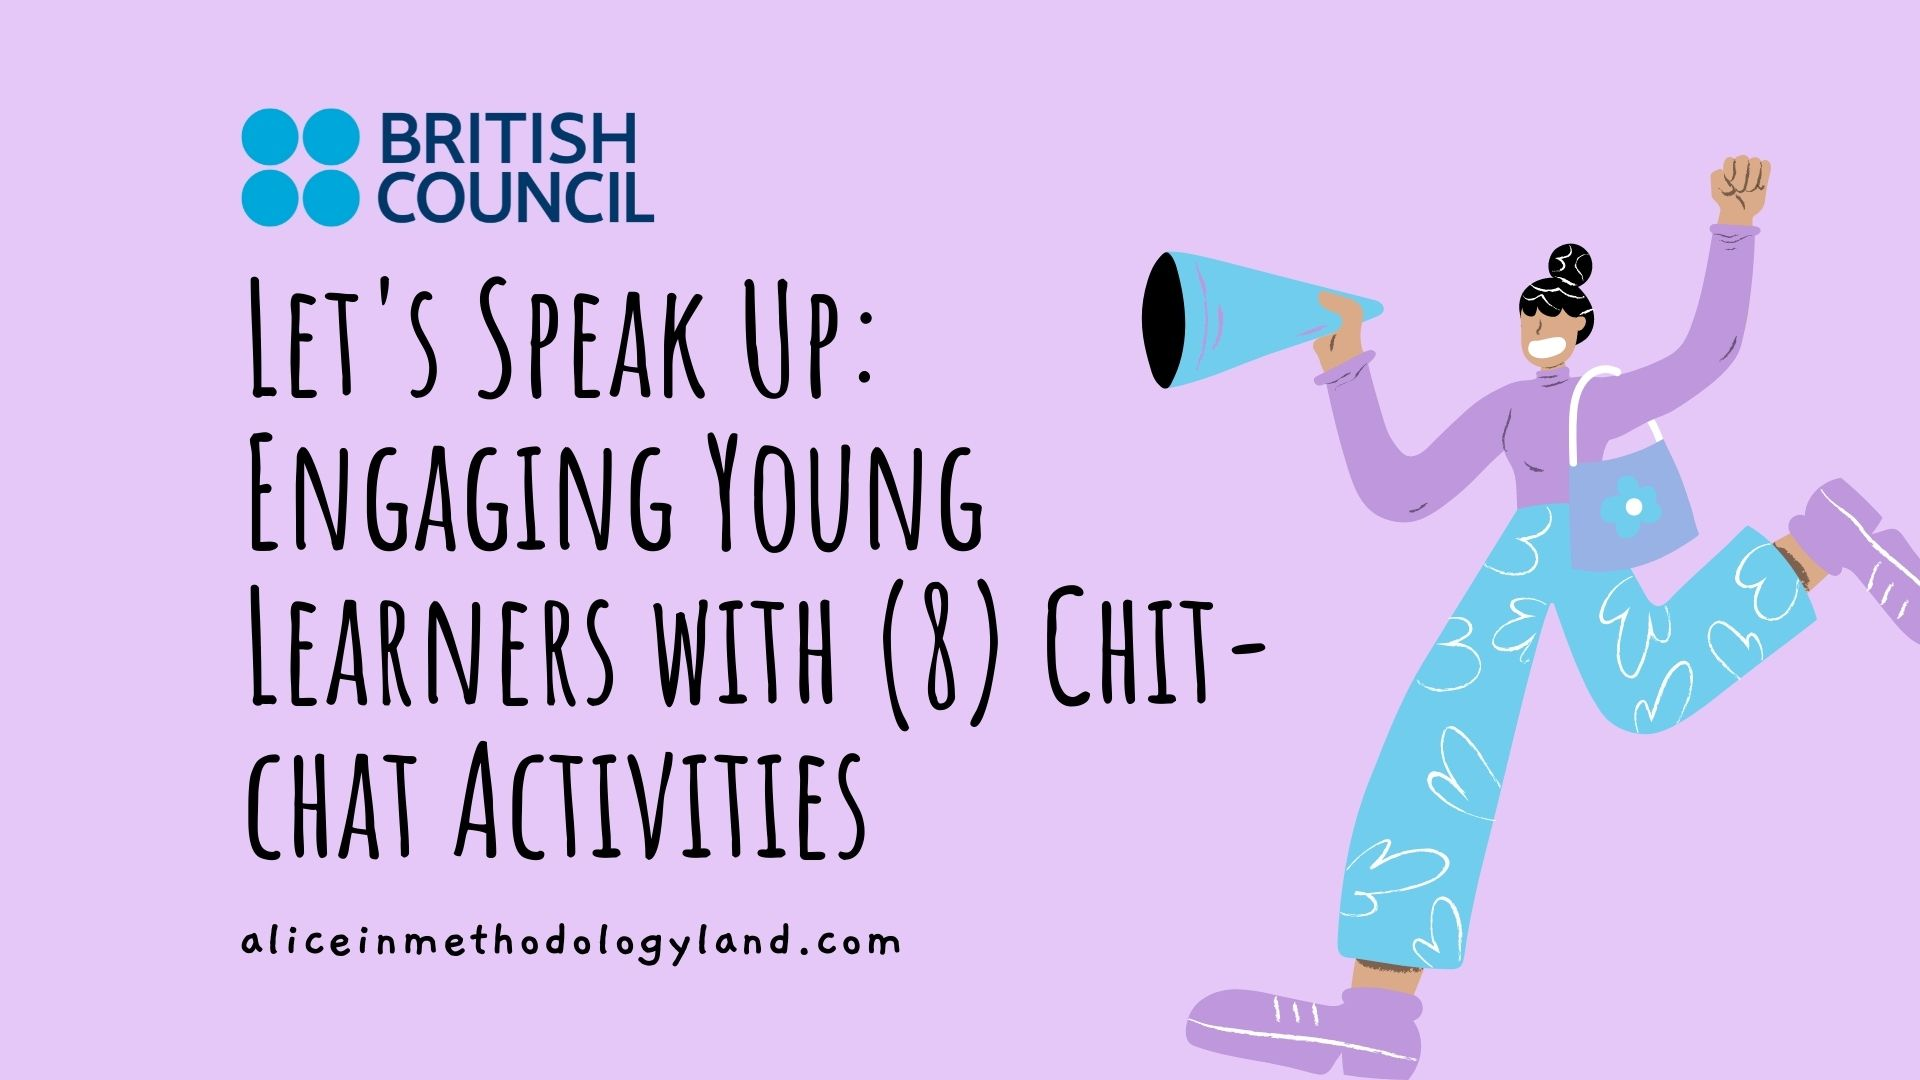 Let's Speak Up: Engaging Young Learners with (8) Chit-chat (Speaking) Activities